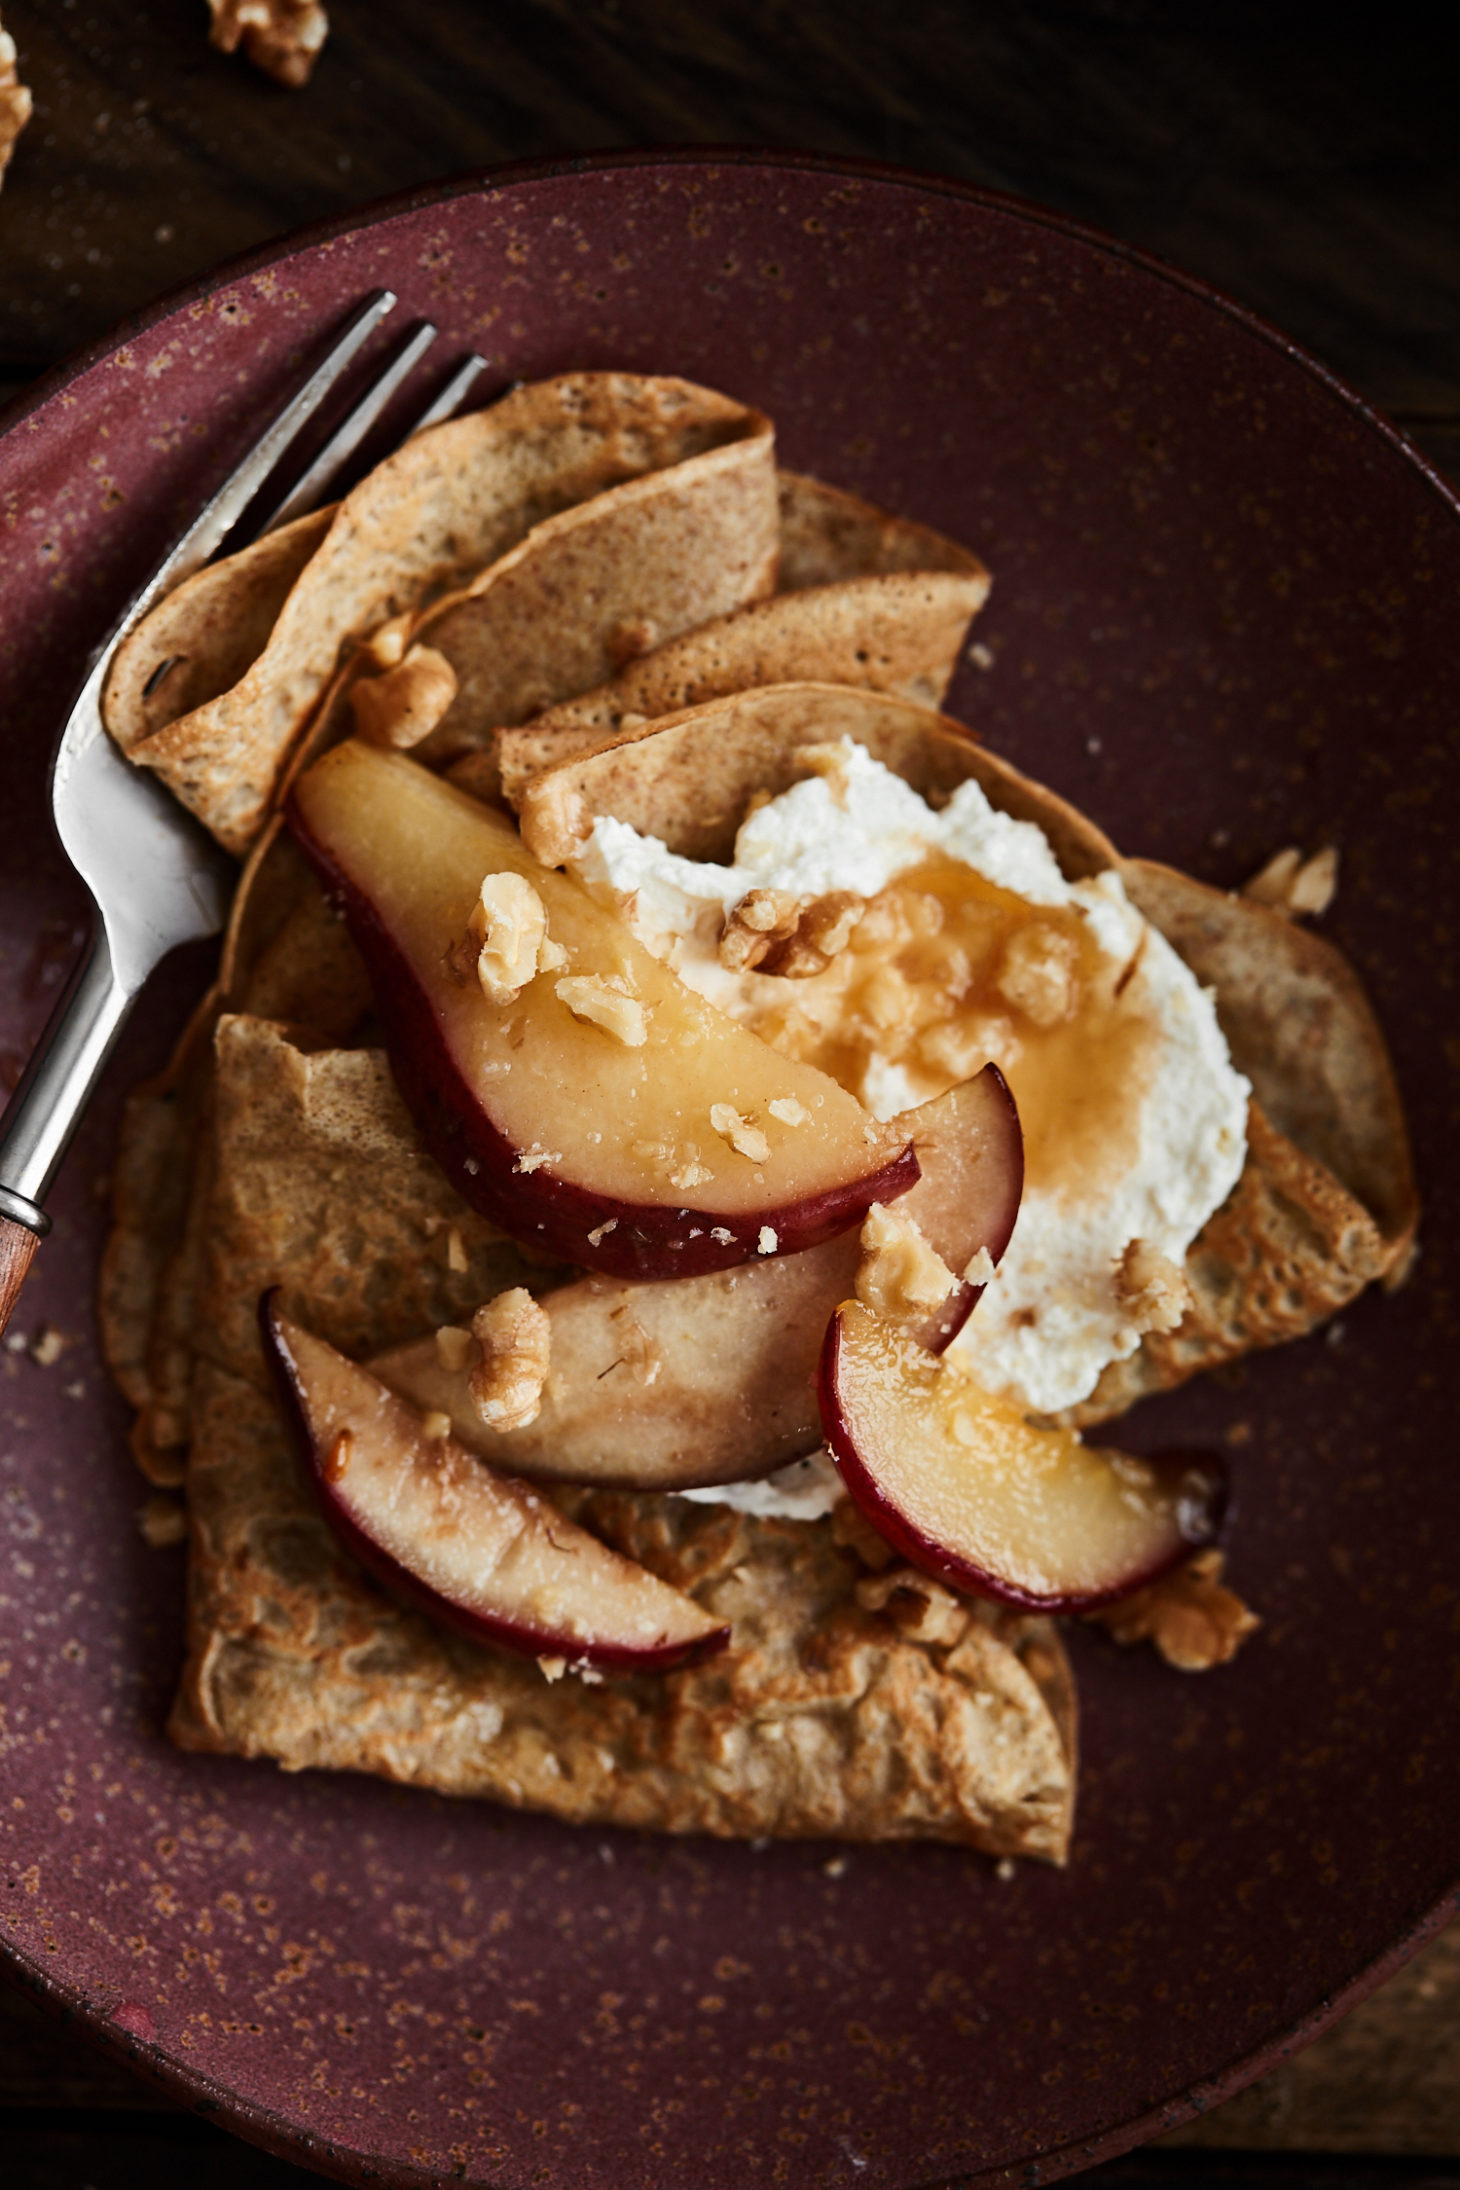 Close-up of rye crepes on a maroon plate topped with pears, whipped crepe, and walnuts.